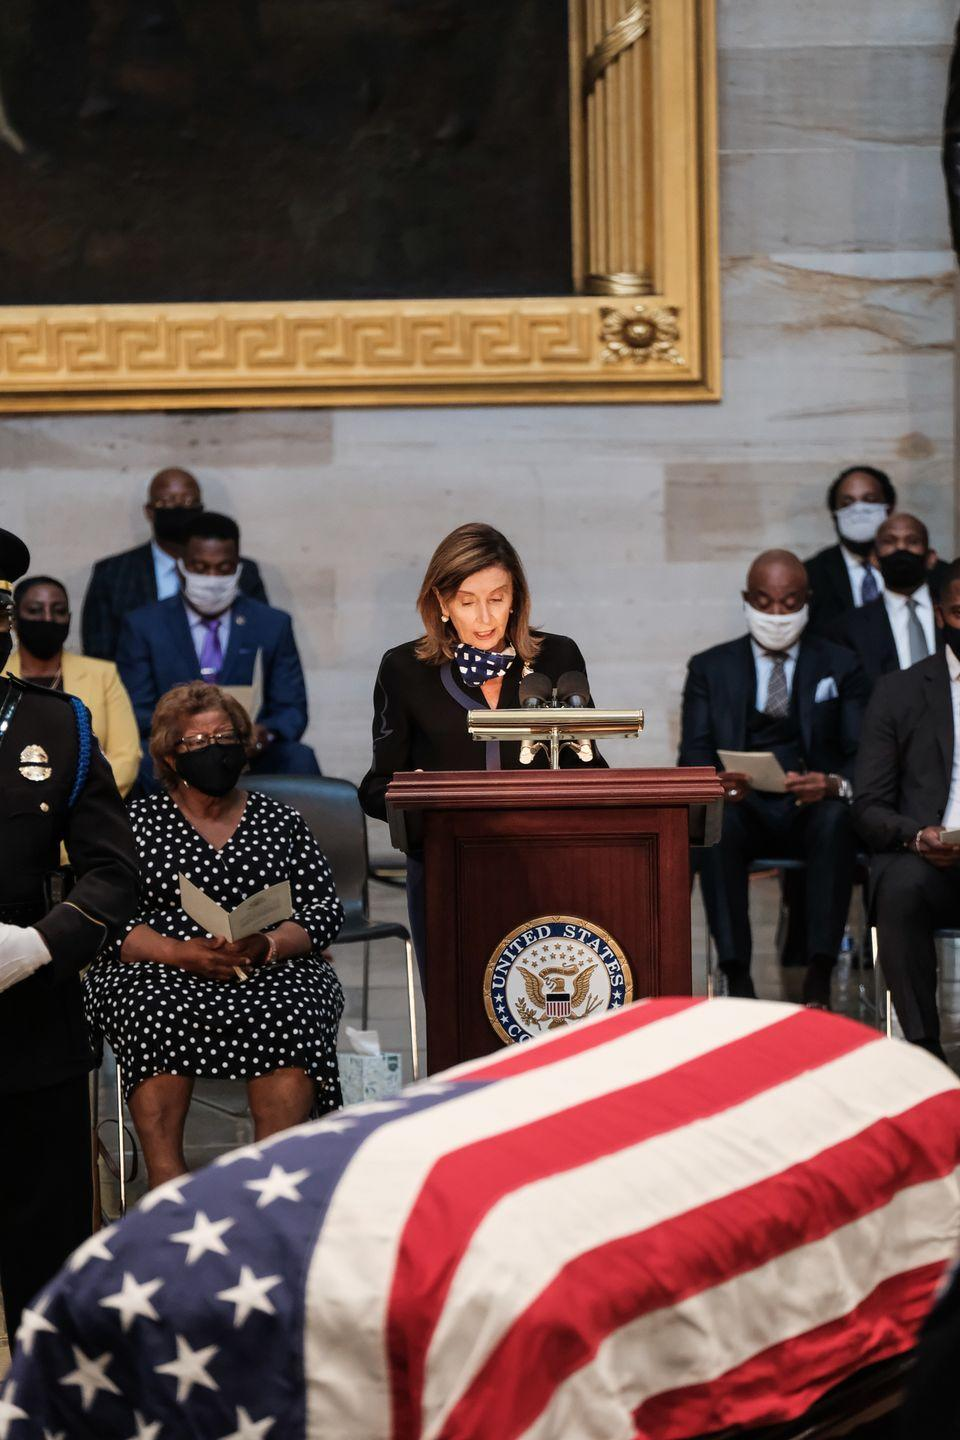 <p>U.S. Speaker of the House Rep. Nancy Pelosi (D-CA) pays her respects as the Rep. John Lewis (D-GA) lies in state at the U.S. Capitol Rotunda in Washington, D.C. on July 27, 2020</p>